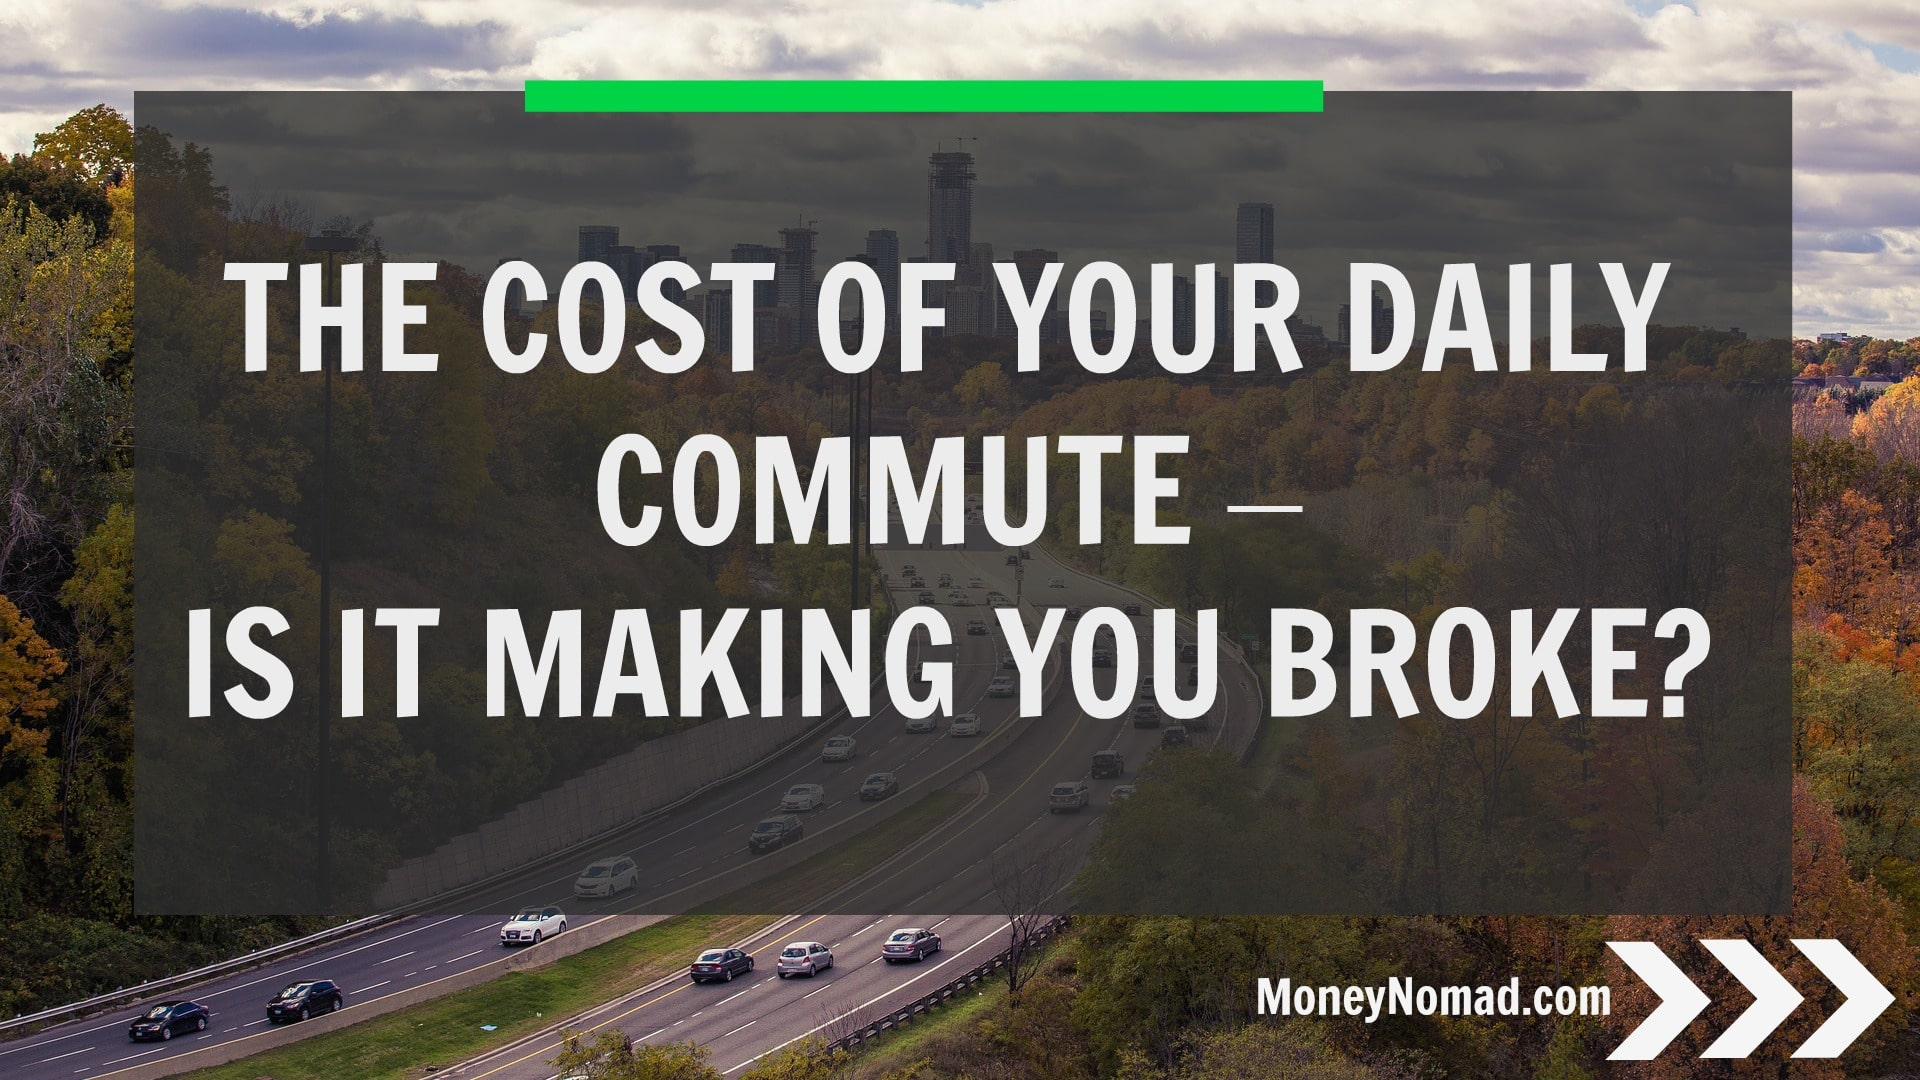 The cost of your dialy commute - is it making you broke